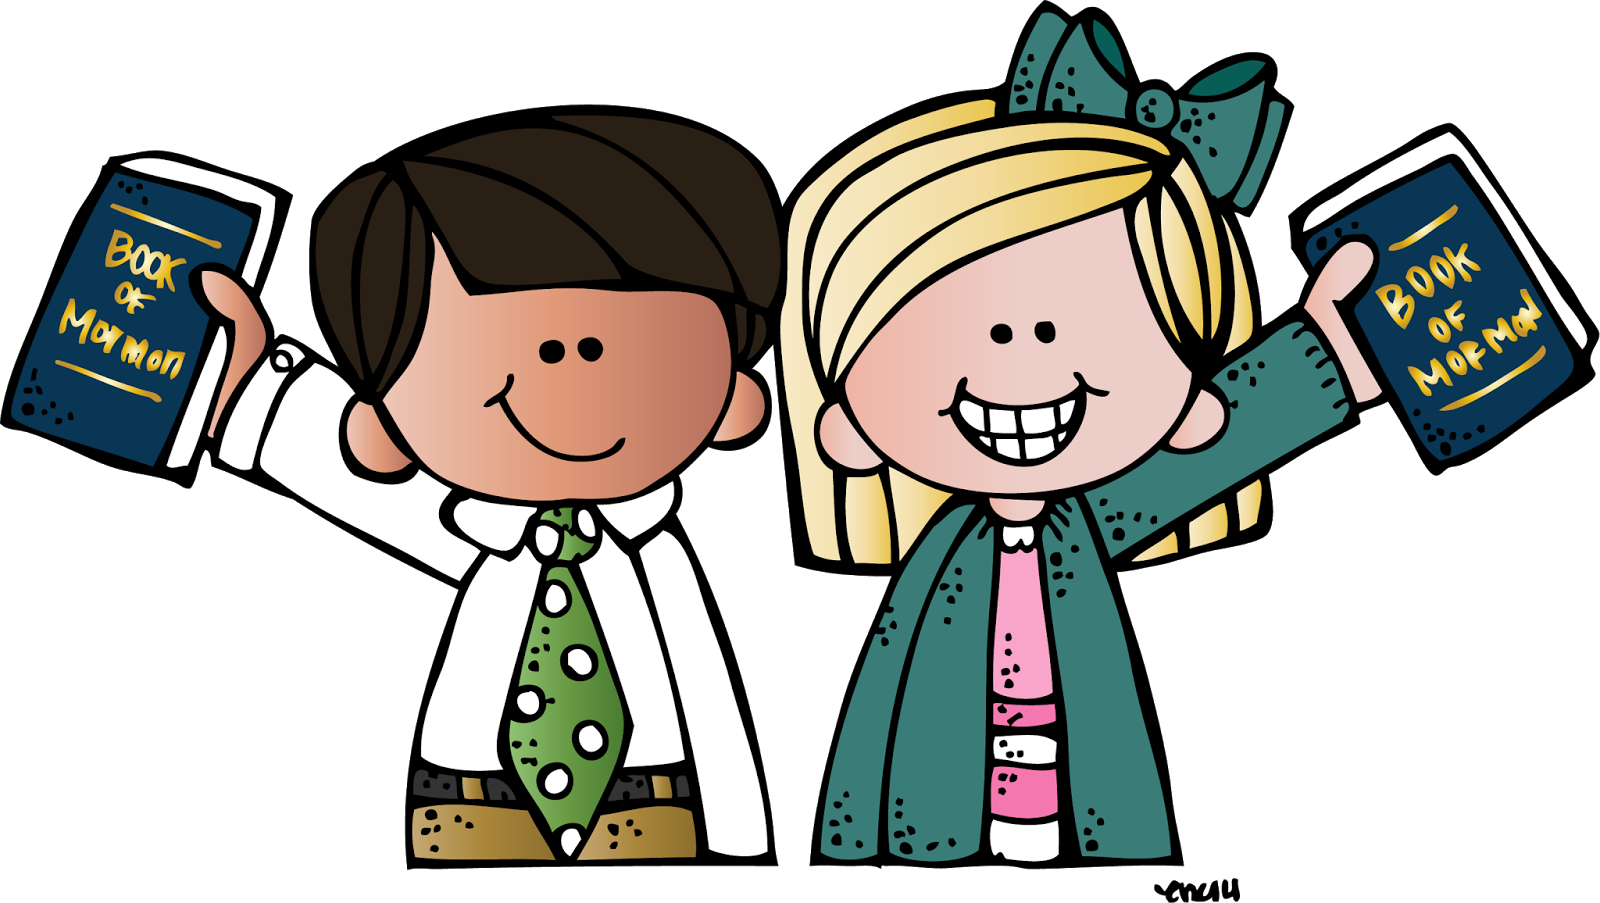 Cartoon book clipart graphic royalty free library I truly love General Conference. It inspires me and brings me joy ... graphic royalty free library